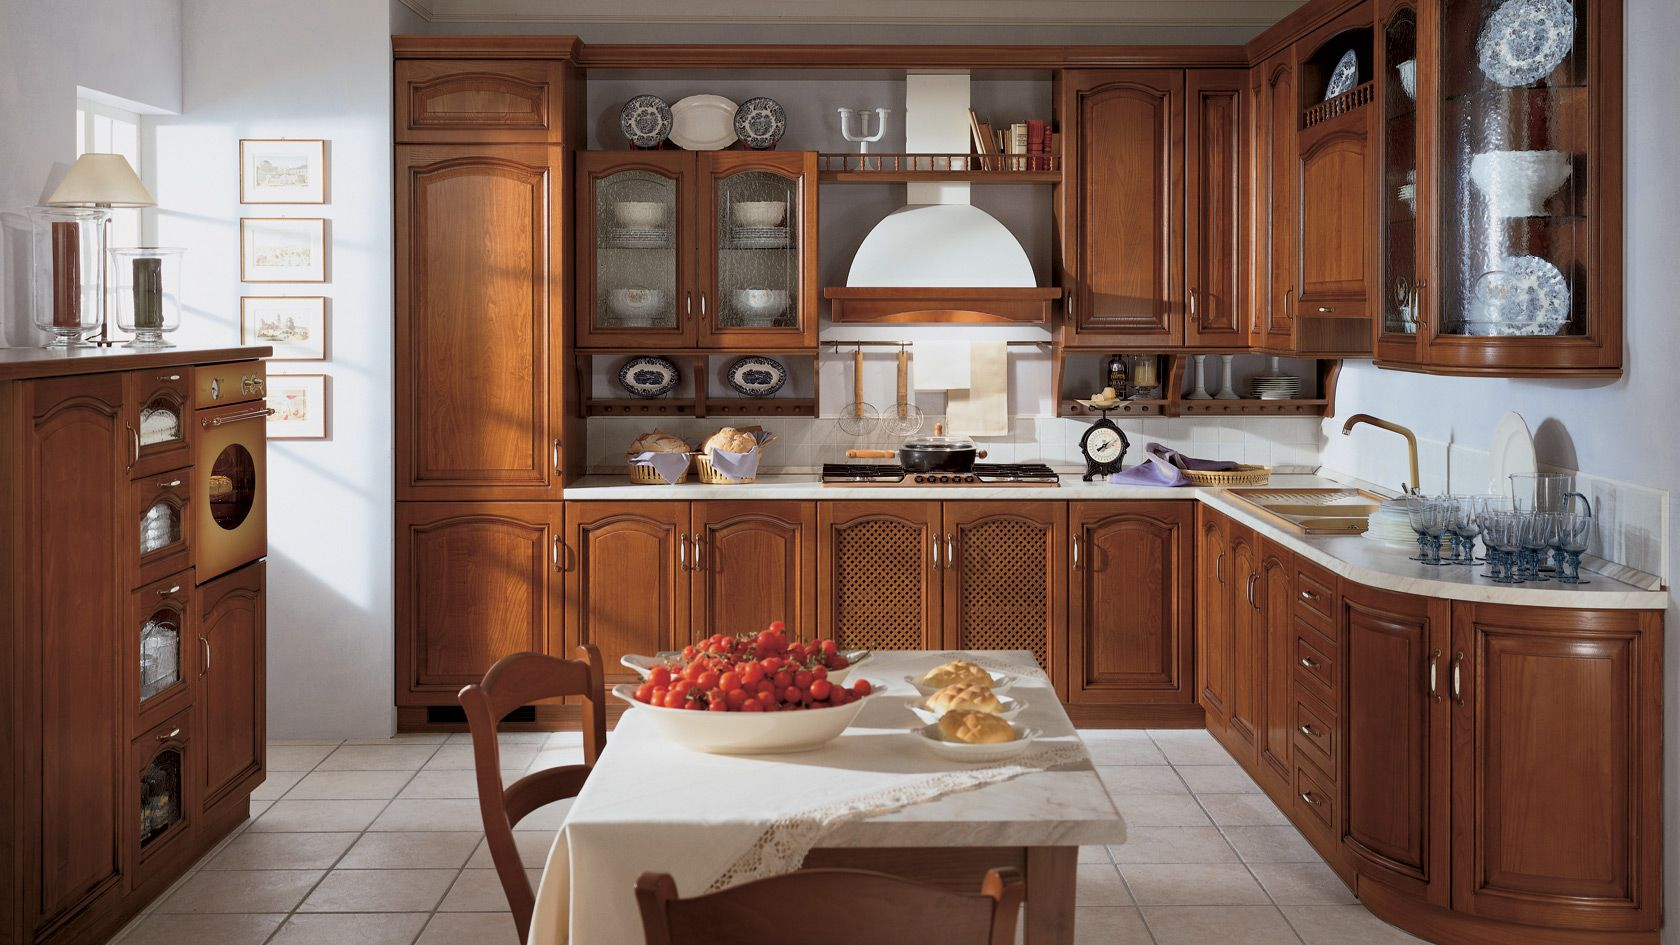 Cucina Margot Scavolini | Cola di rienzo ideas | Pinterest